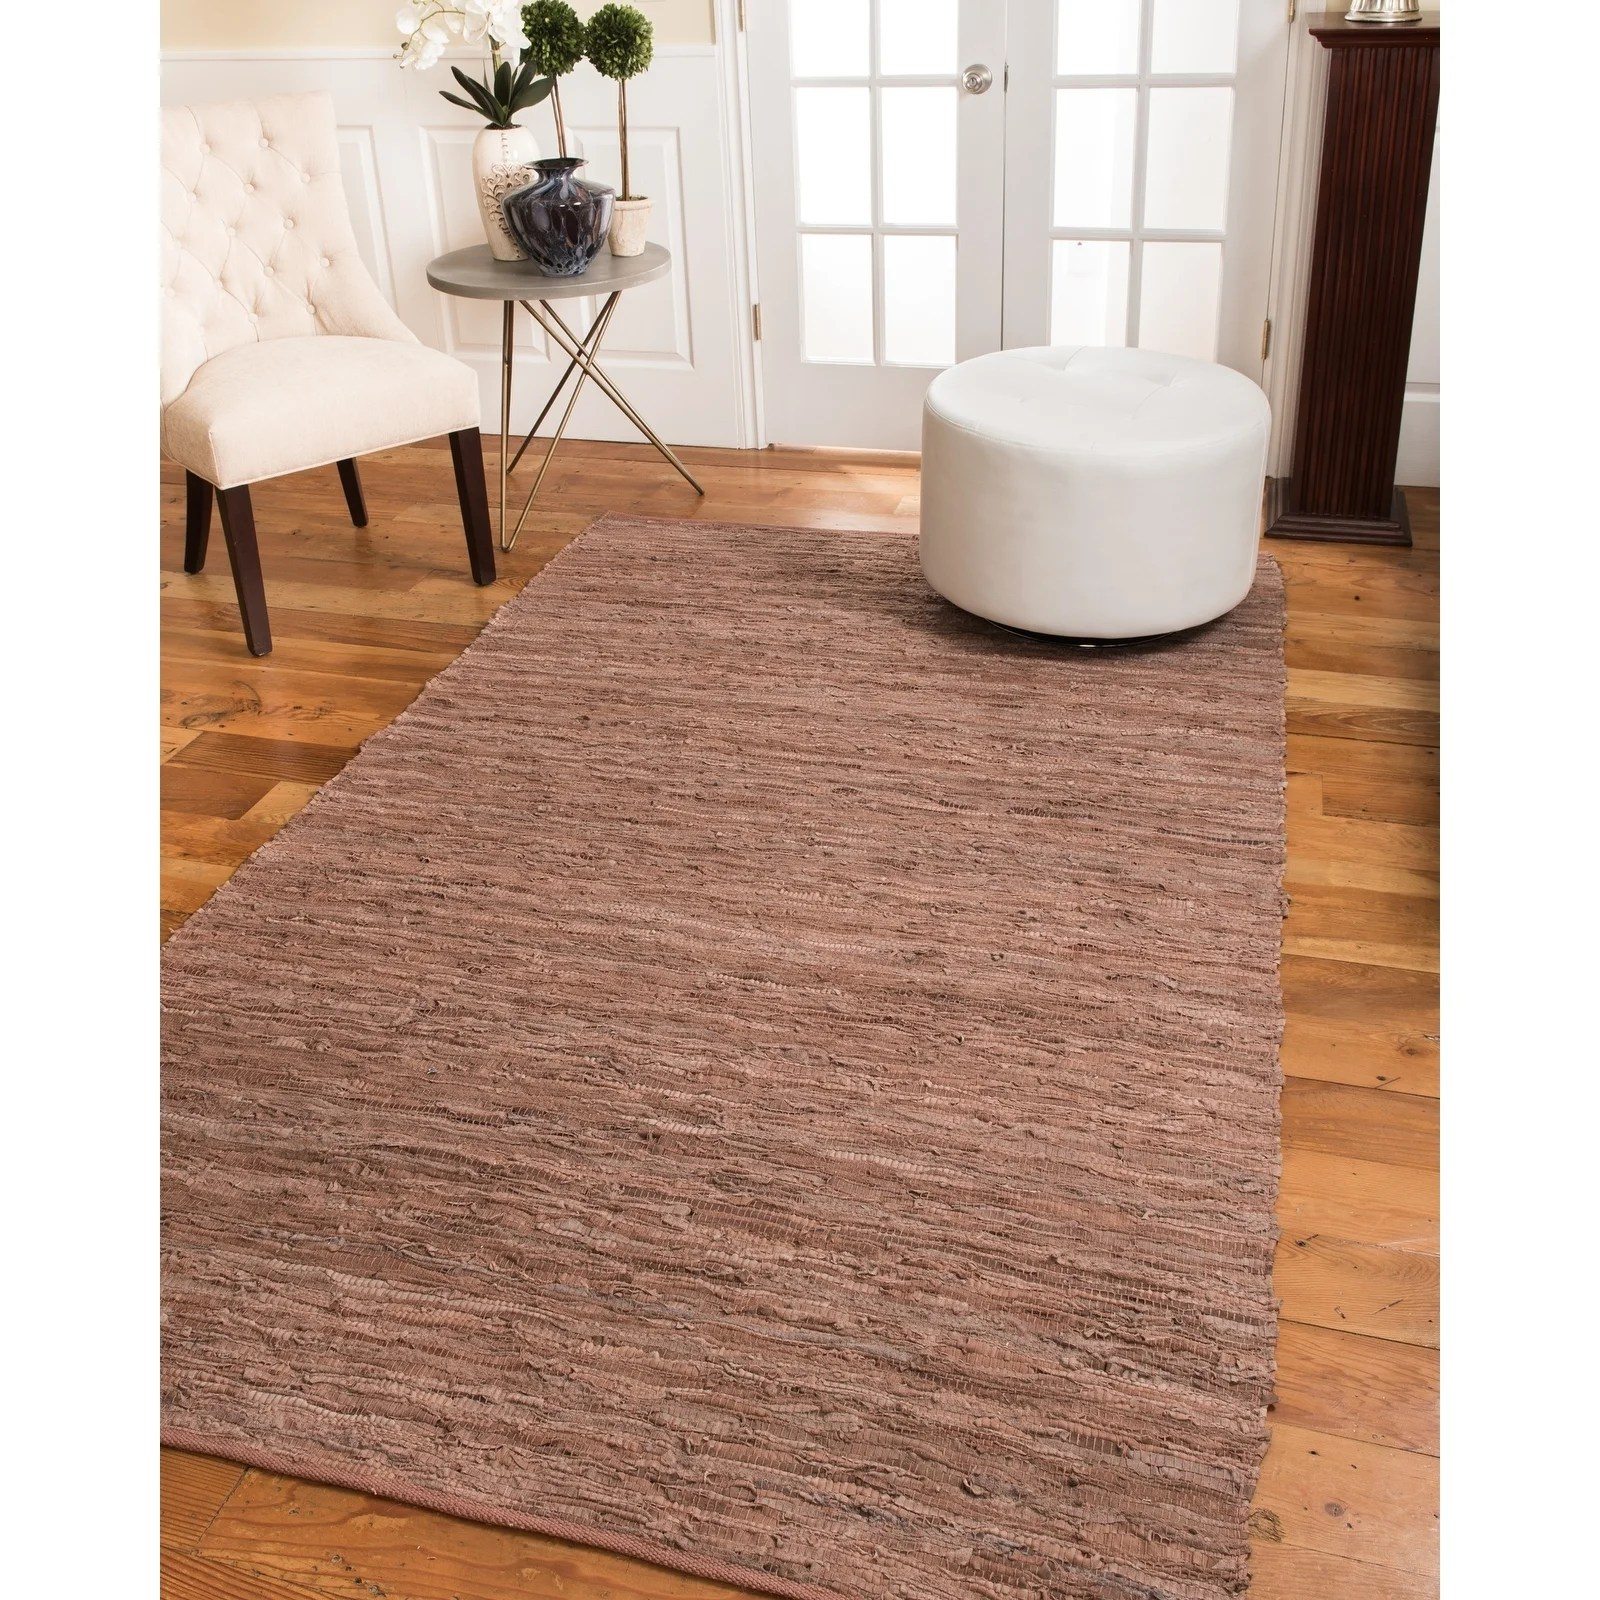 Natural Area Rugs Handmade Reversible Biscayne Leather Cotton Rectangle Rug (8'X10') Red - 8' x 10'